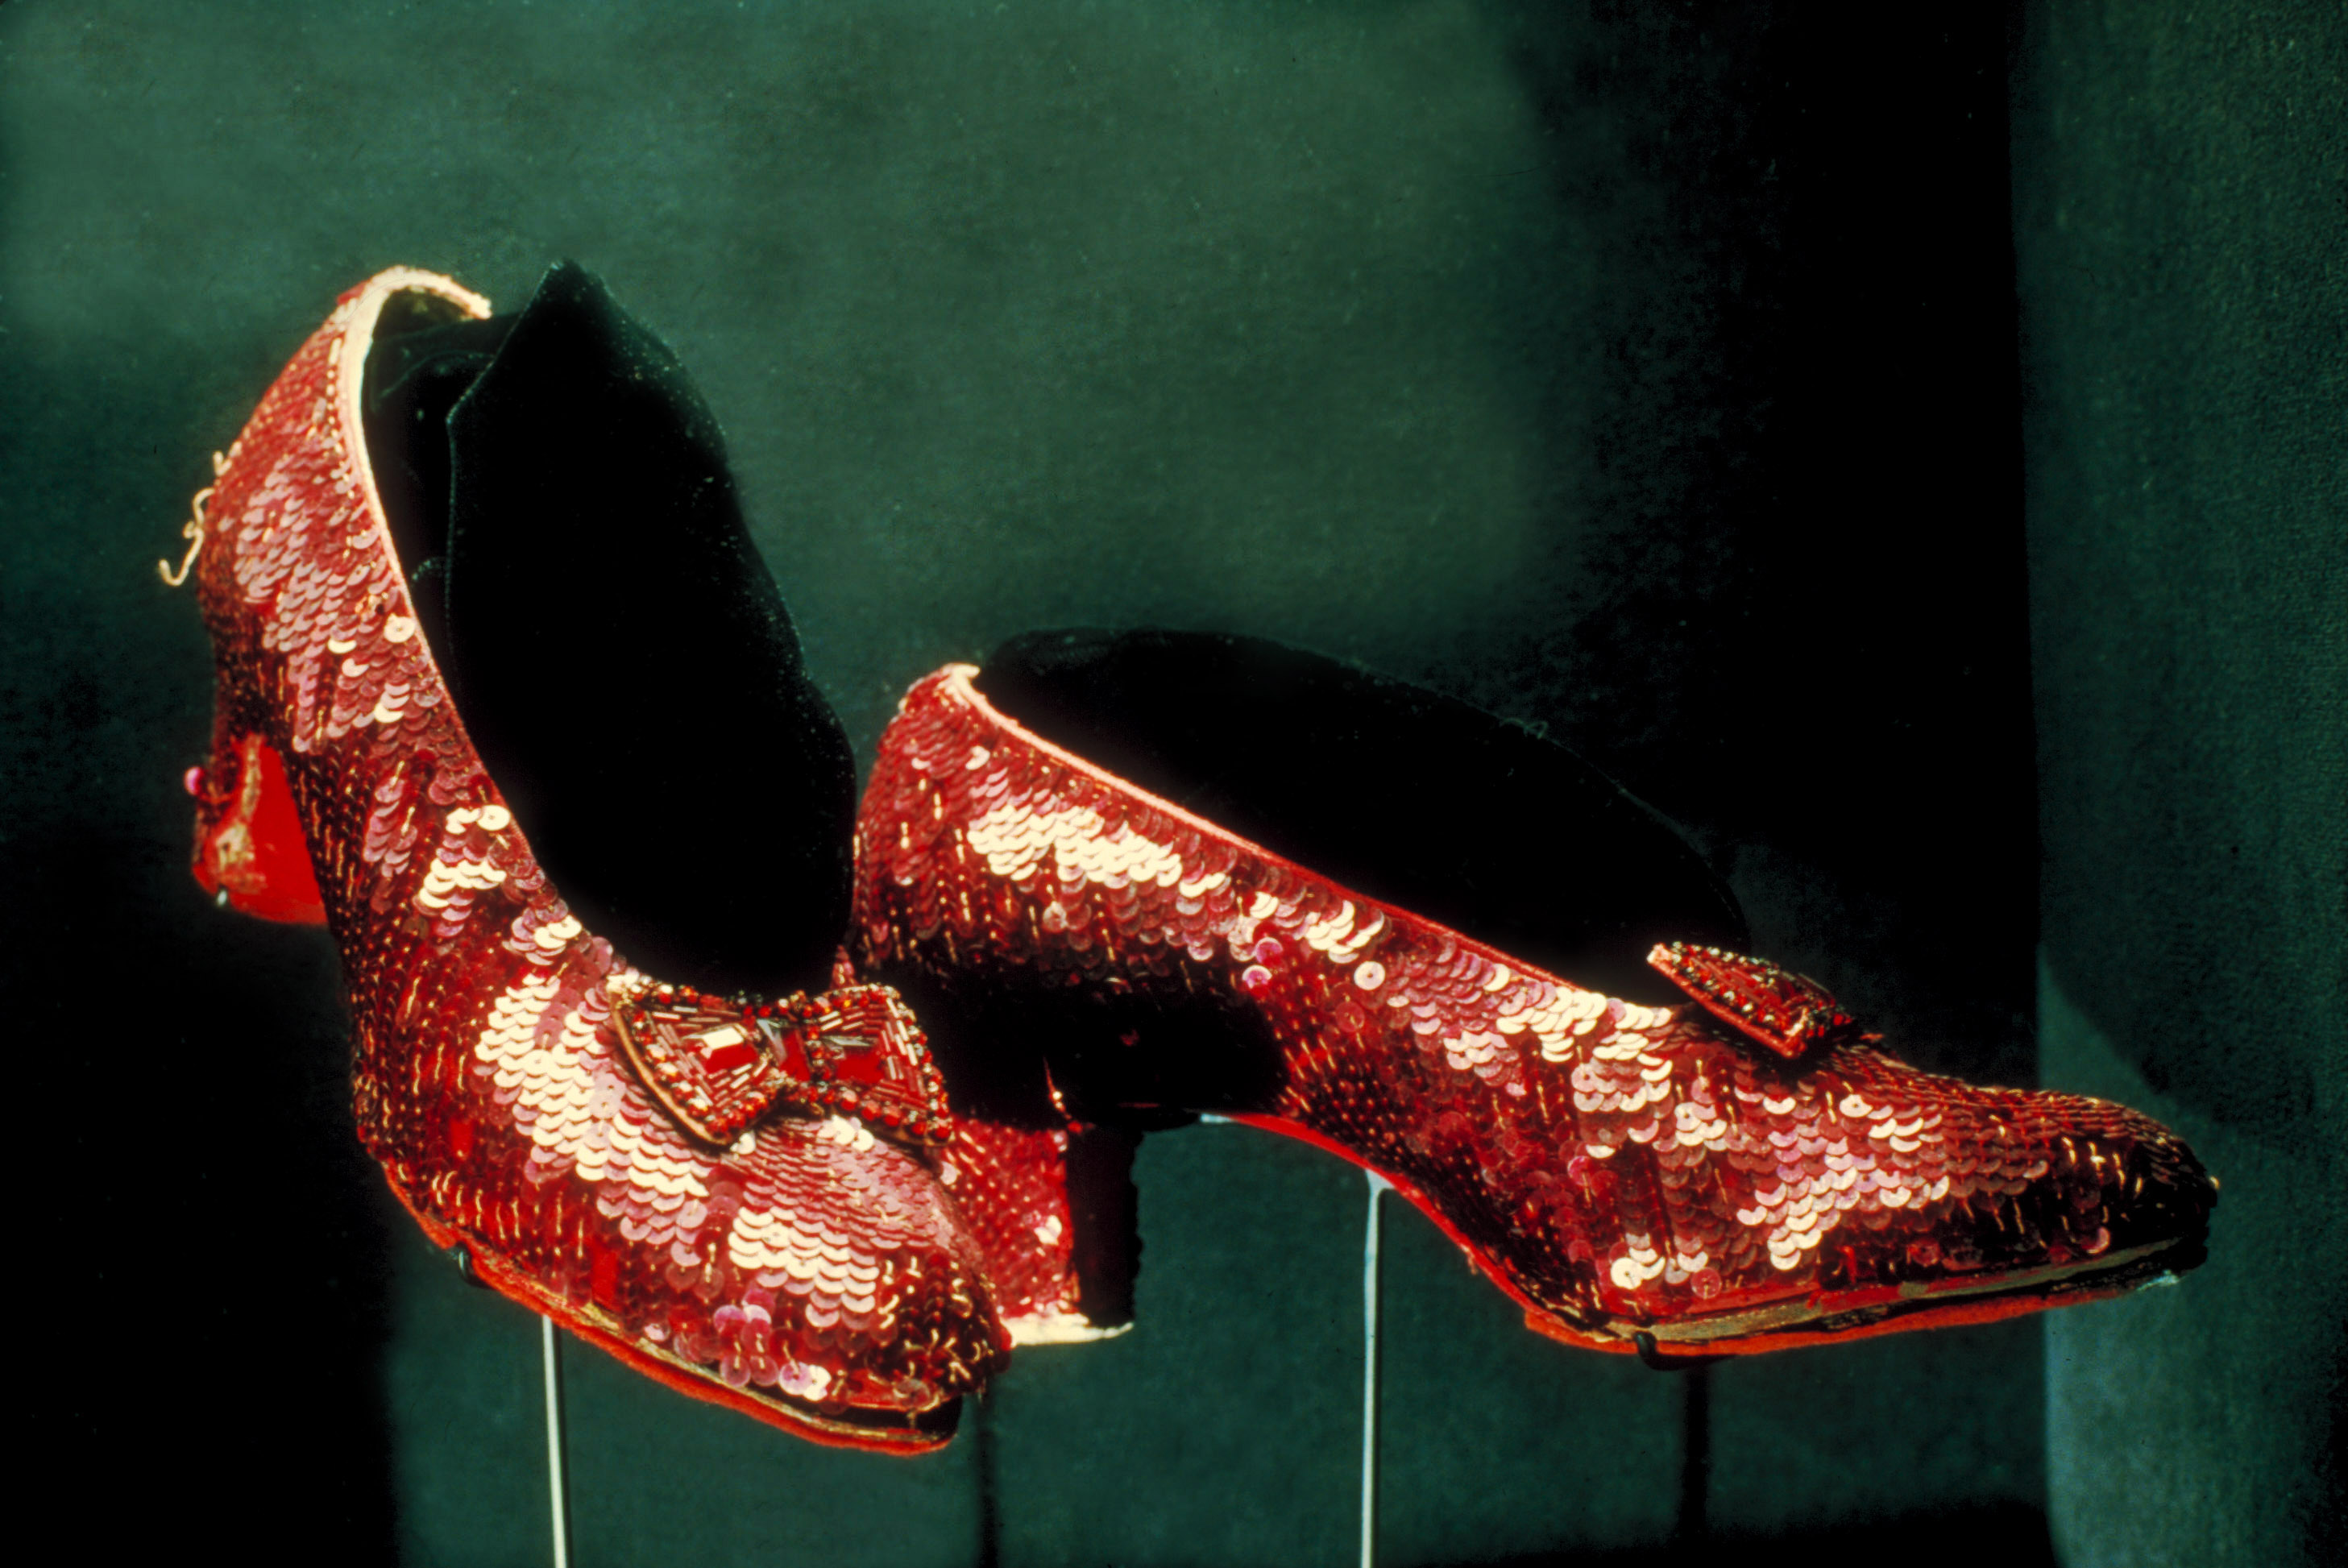 'Wizard of Oz' slippers found after 25 years